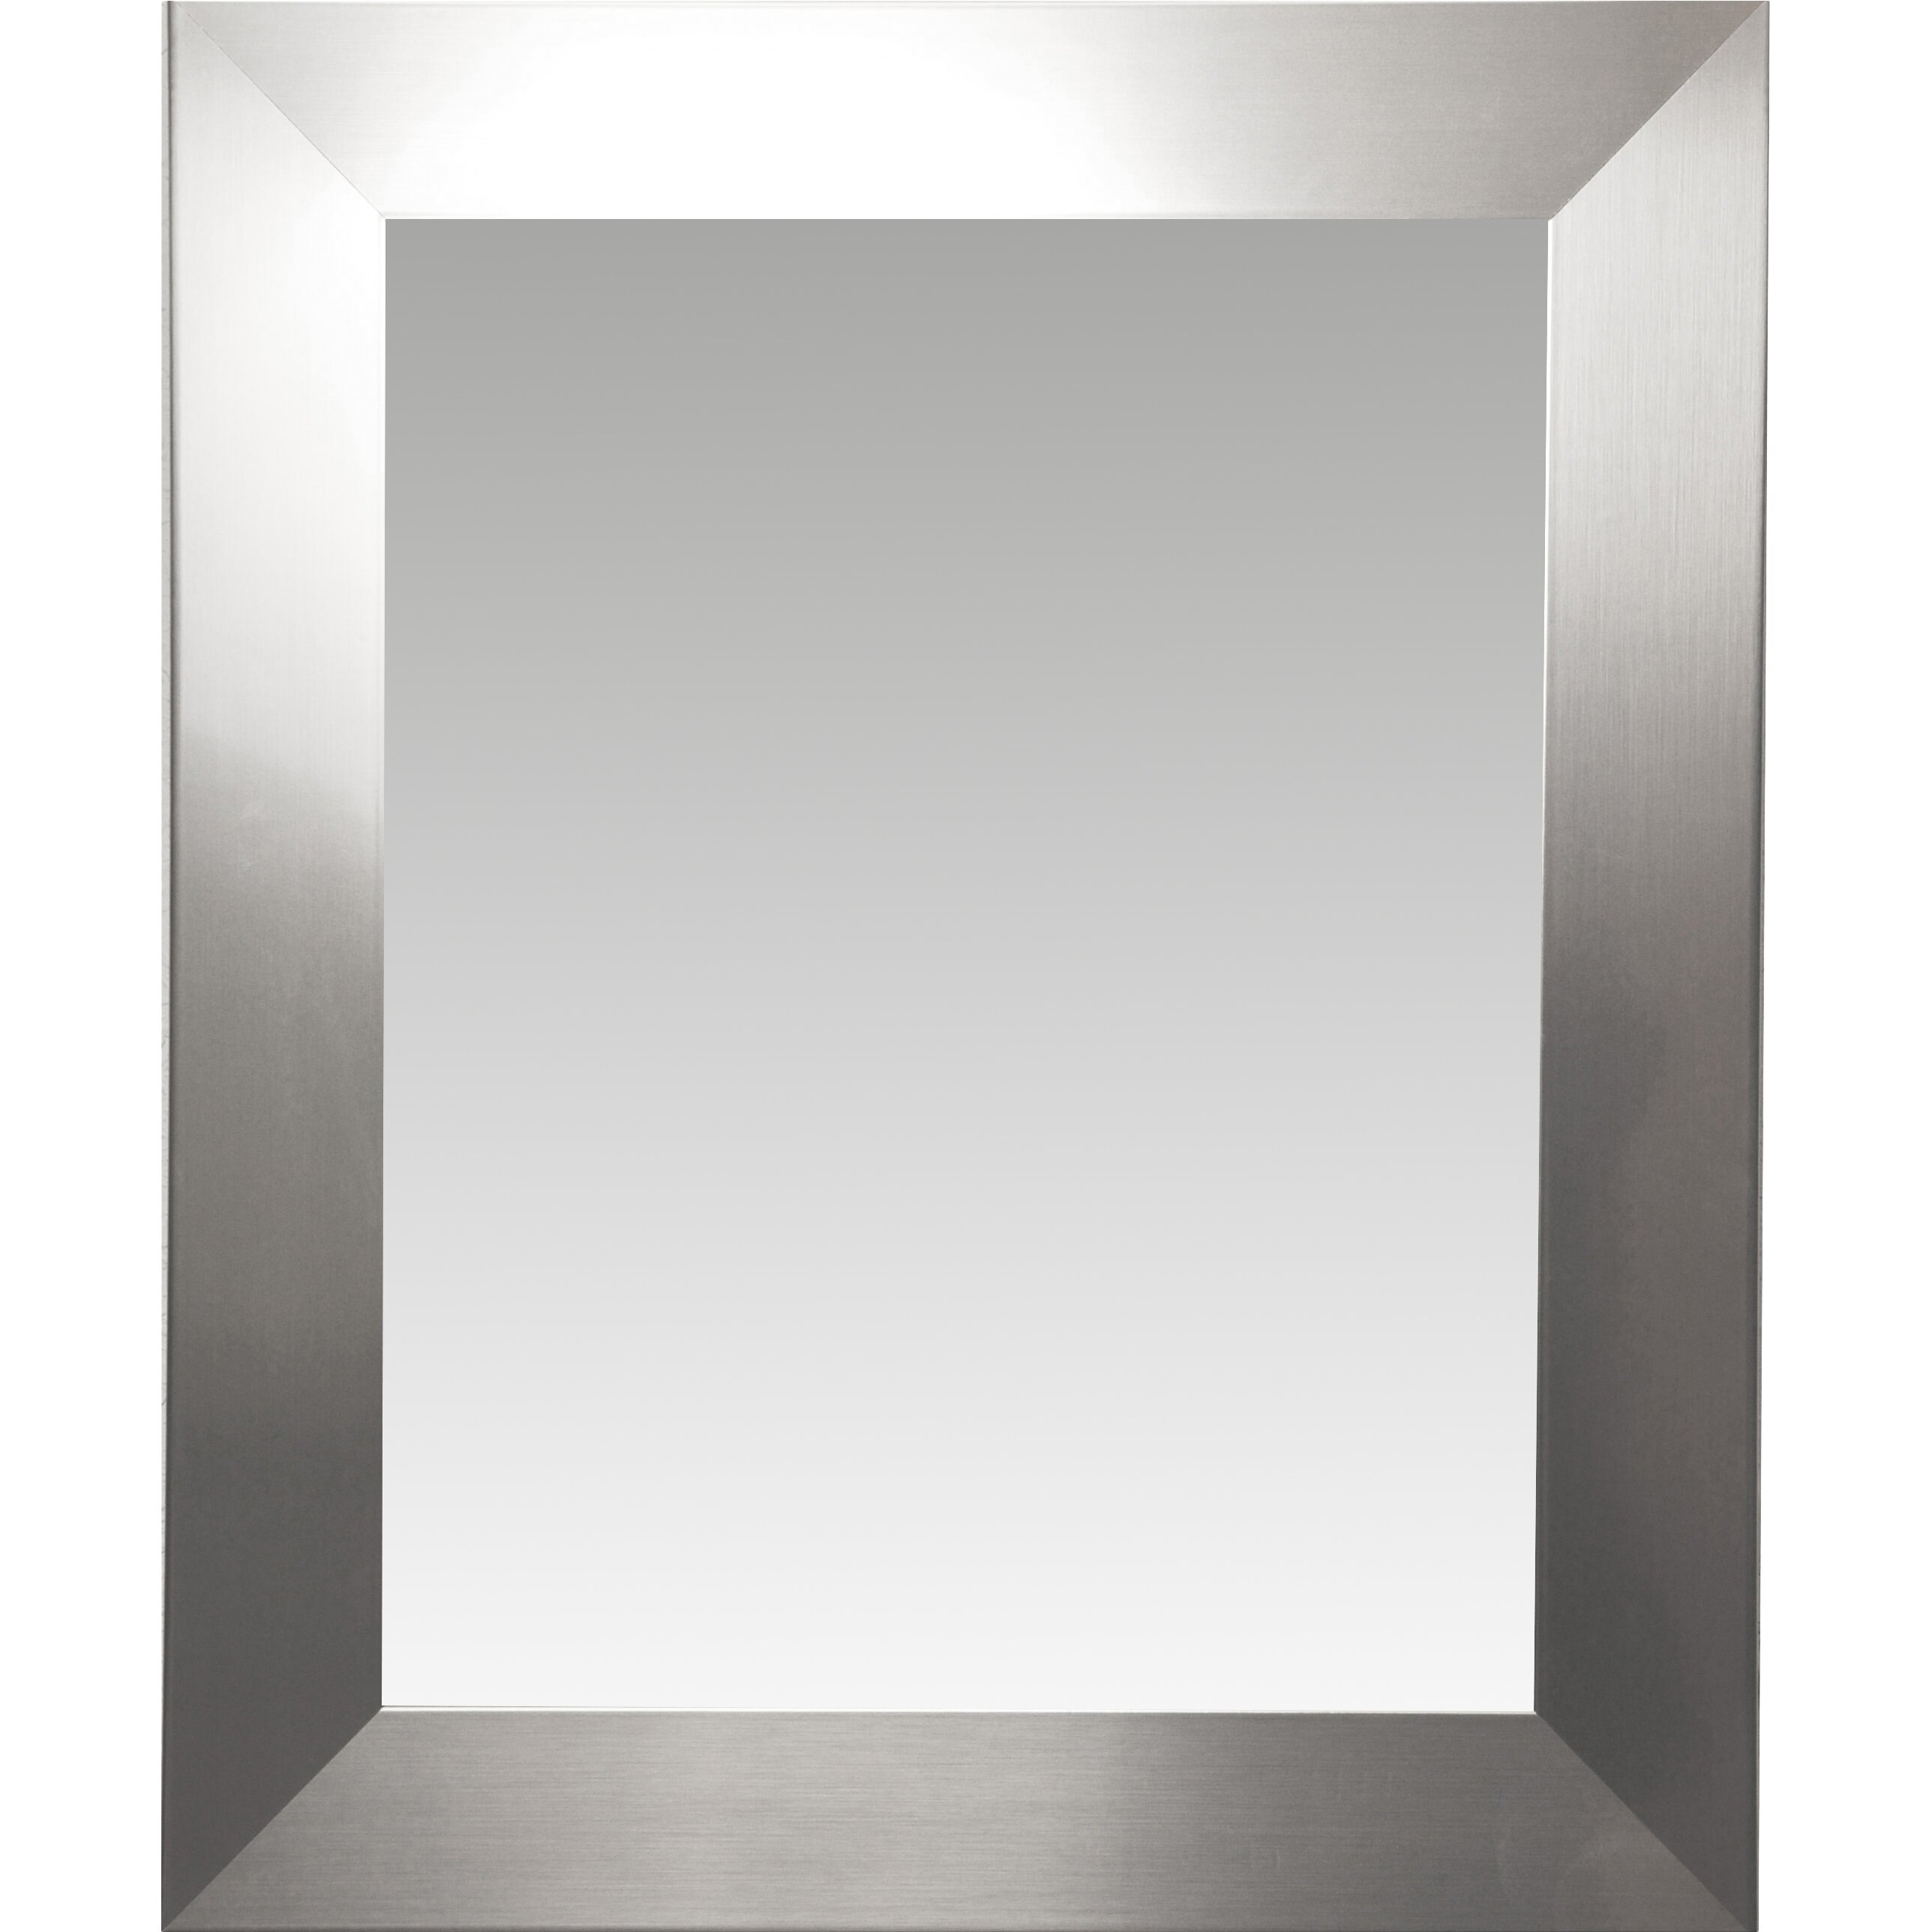 Mirrors in the wall